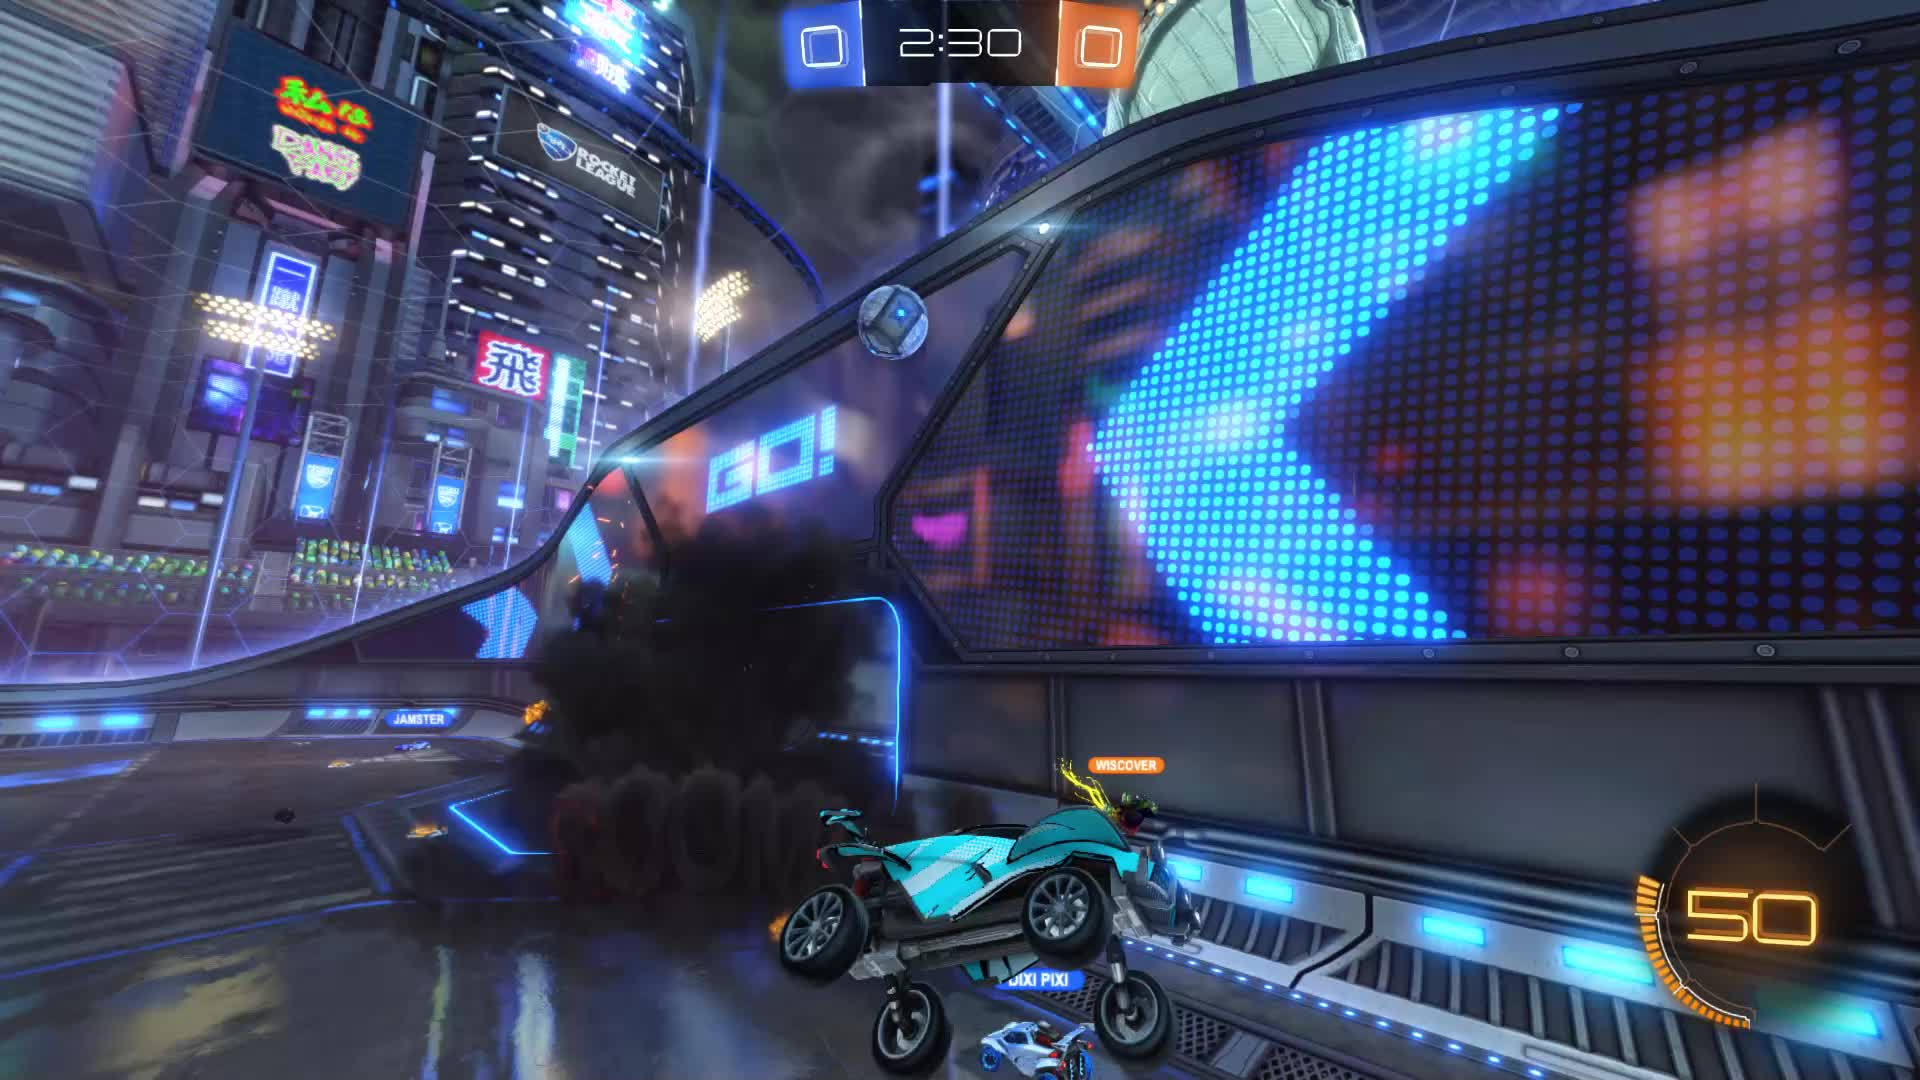 Baby Shark doo doo doo, Gif Your Game, GifYourGame, Goal, Rocket League, RocketLeague, Goal 1: Baby Shark doo doo doo GIFs